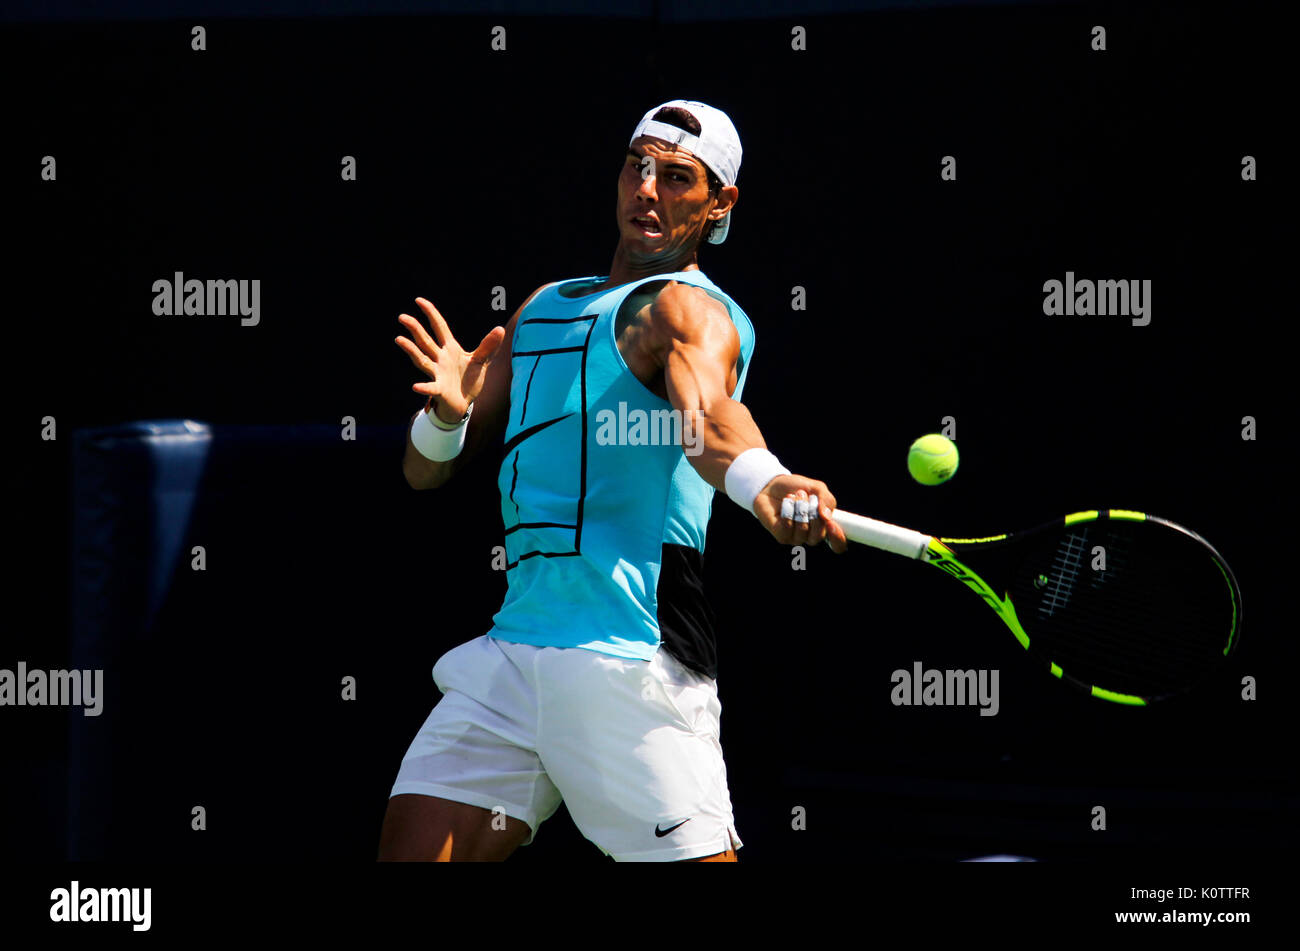 New York, United States. 23rd Aug, 2017. US Open Tennis: New York, 23 August, 2017 - Spain's Rafael Nadal practicing at the National Tennis Center in Flushing Meadows, New York in preparation for the US Open which begins next Monday, August 28th Credit: Adam Stoltman/Alamy Live News - Stock Image